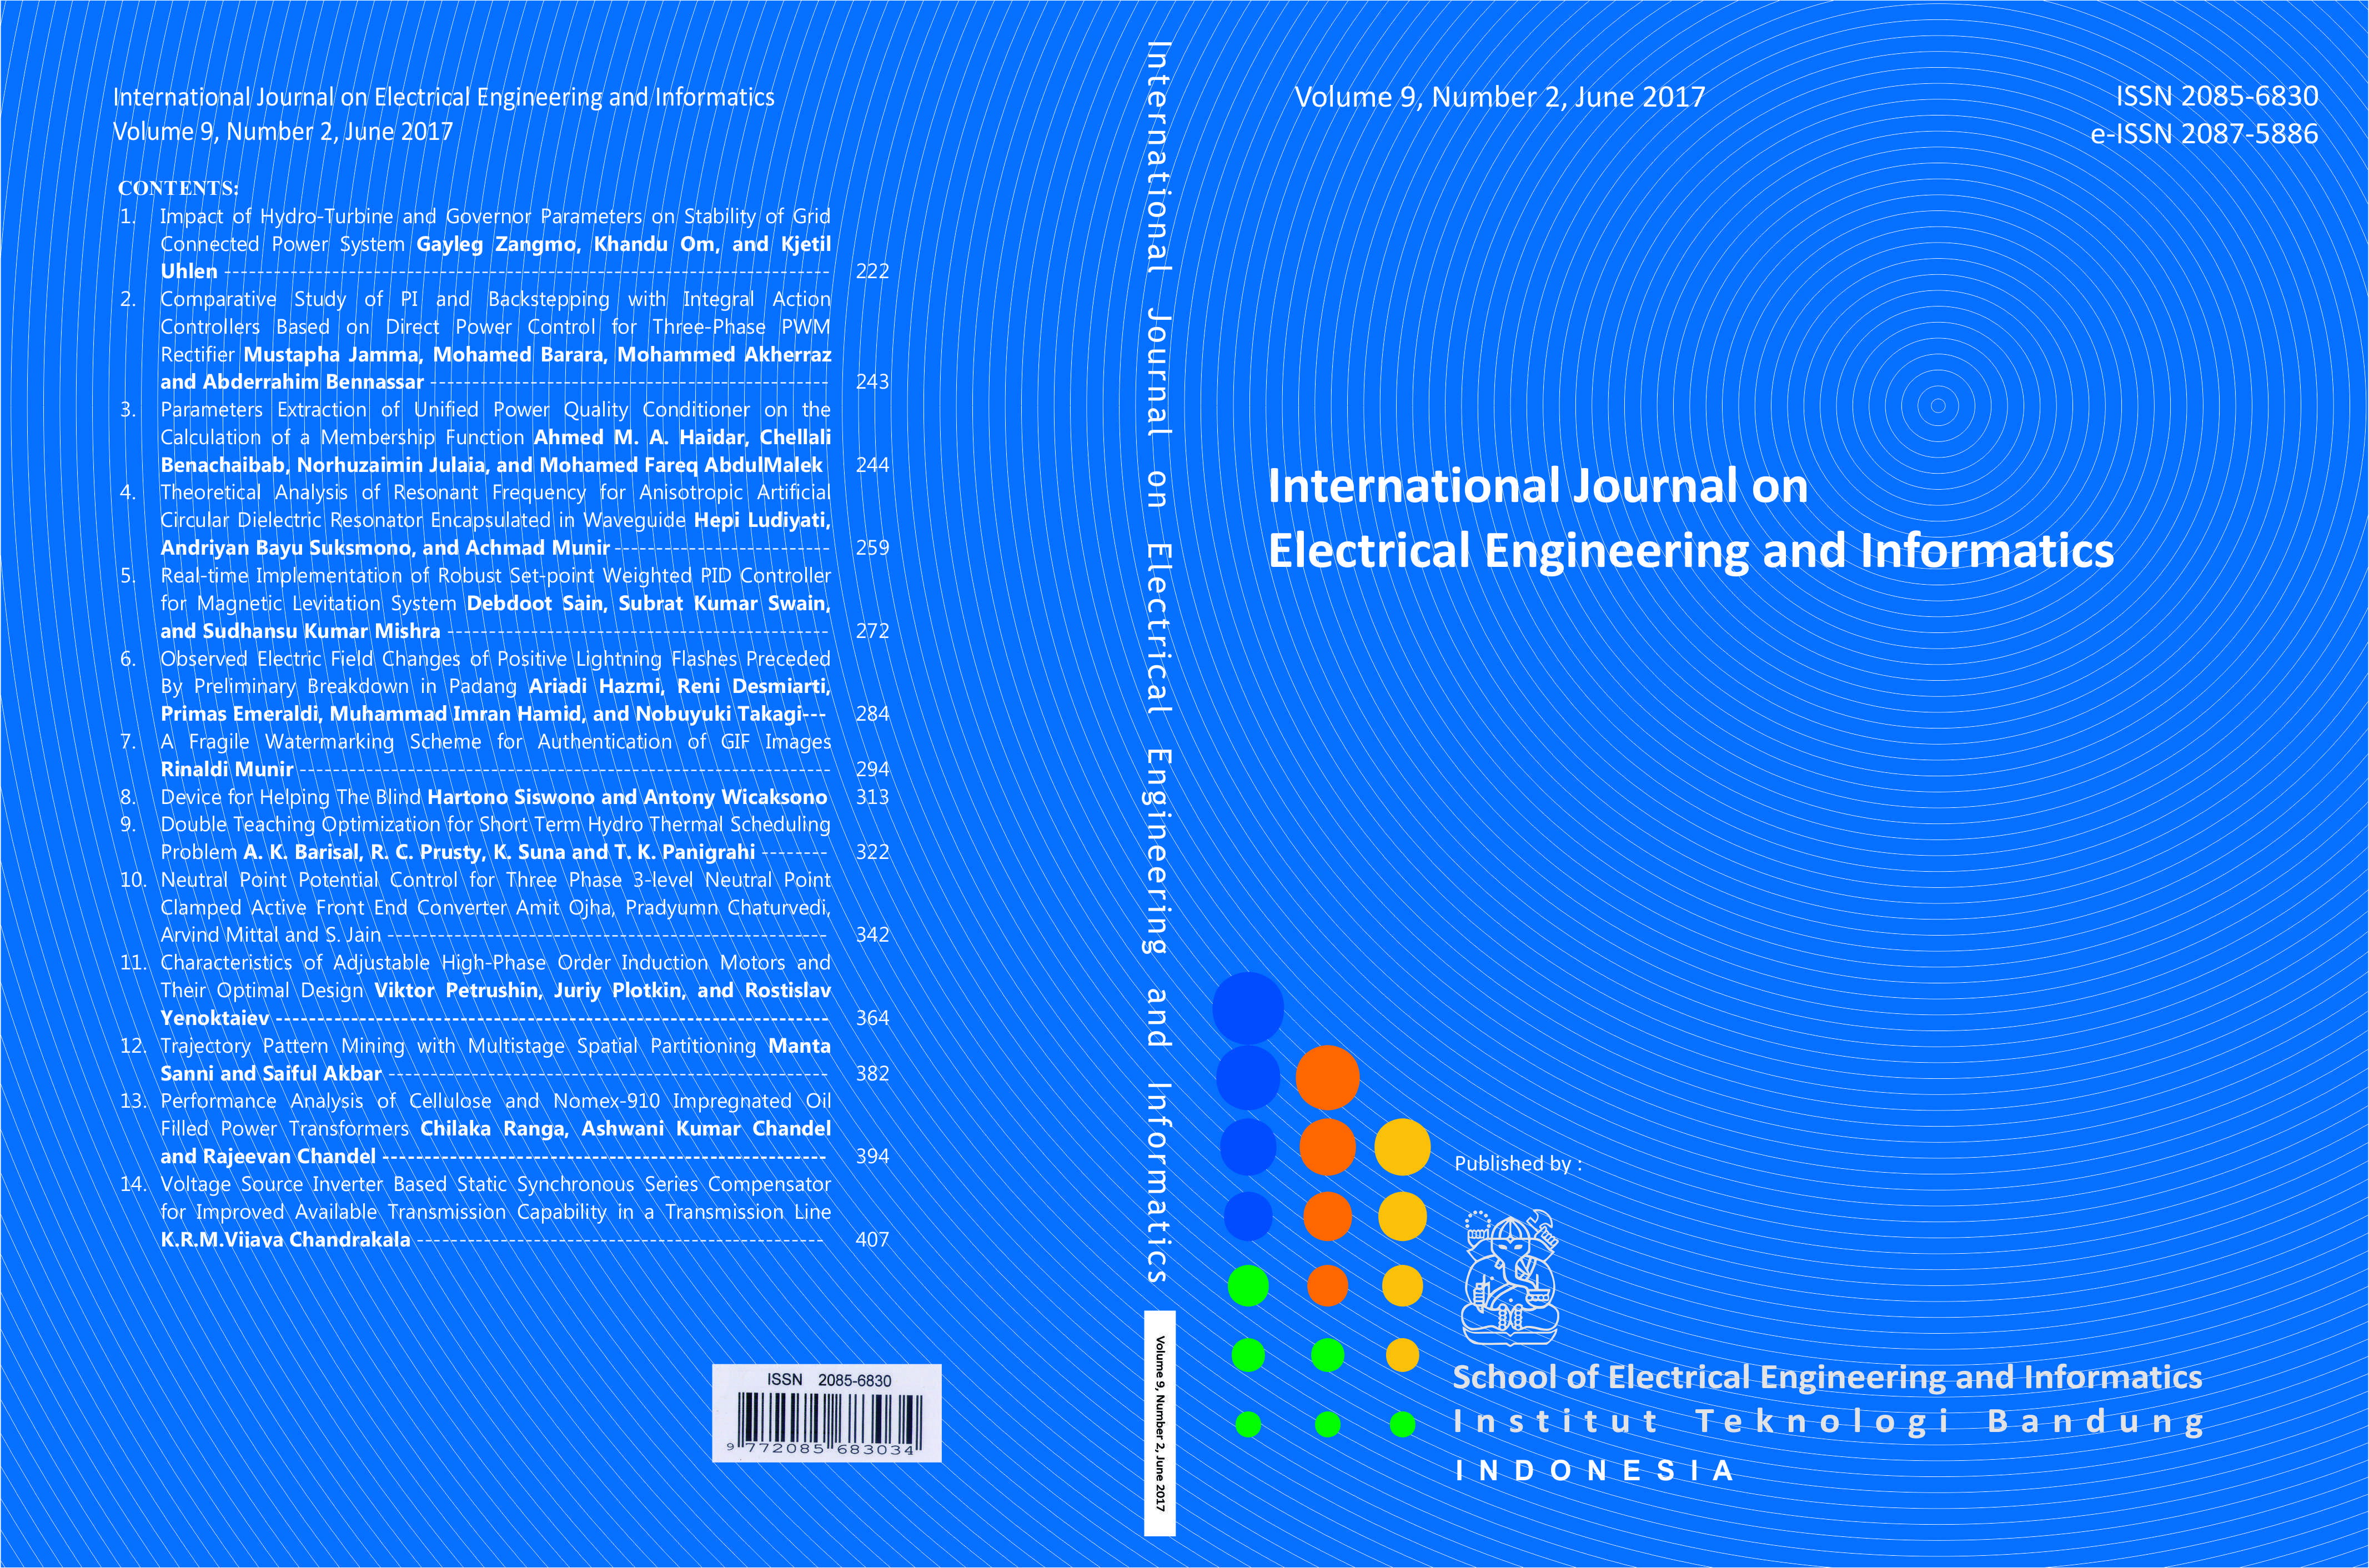 Journal cover Vol. 9 No. 2 June 2017